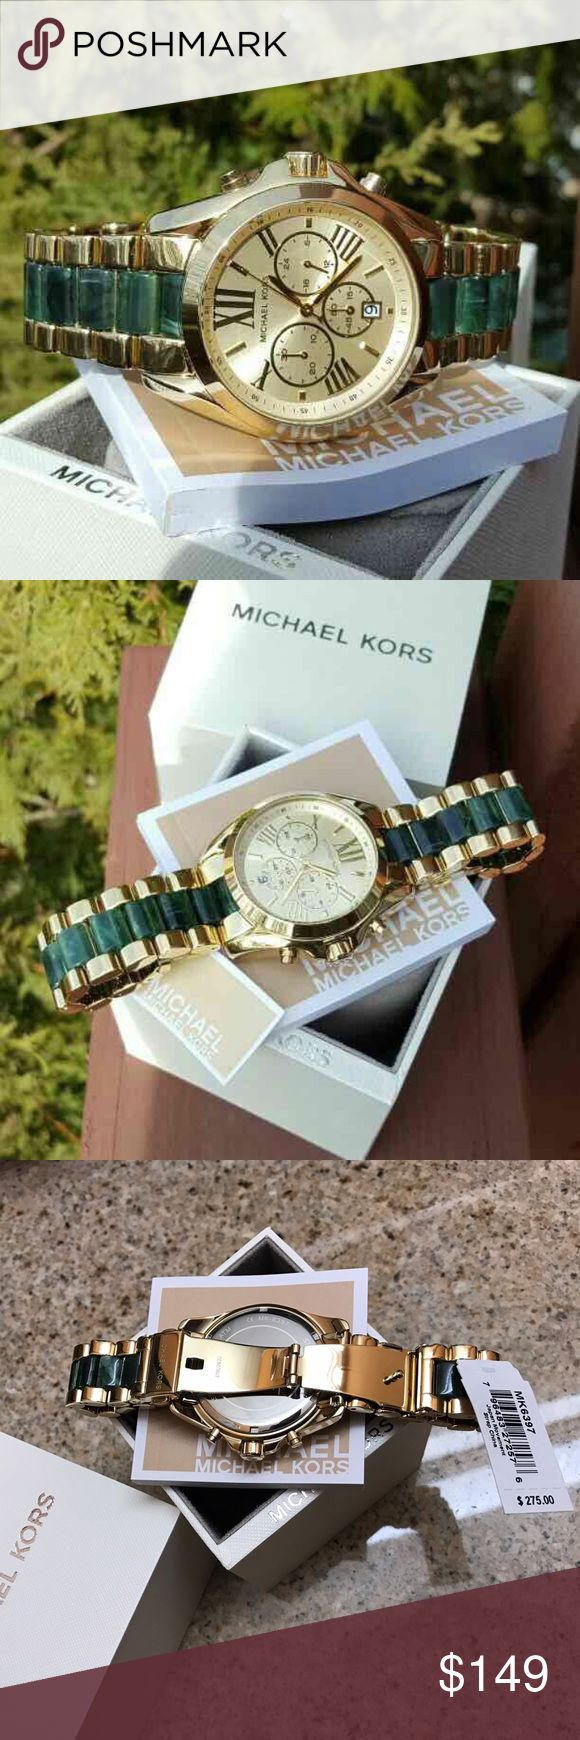 New Michael Kors MK Bradshaw bracelet watch MK6397 LAST 1! Guaranteed Authentic MK6397 / Model: Bradshaw / Retail: $295 / Gold stainless steel and  emerald acetate / New with Michael Kors watch box and owners booklet included / Chronograph dial / 43mm case / 10 ATM / UPC: 796483272576 / No trades. Buy now or offer only / Shipped same business day. Michael Kors Accessories Watches